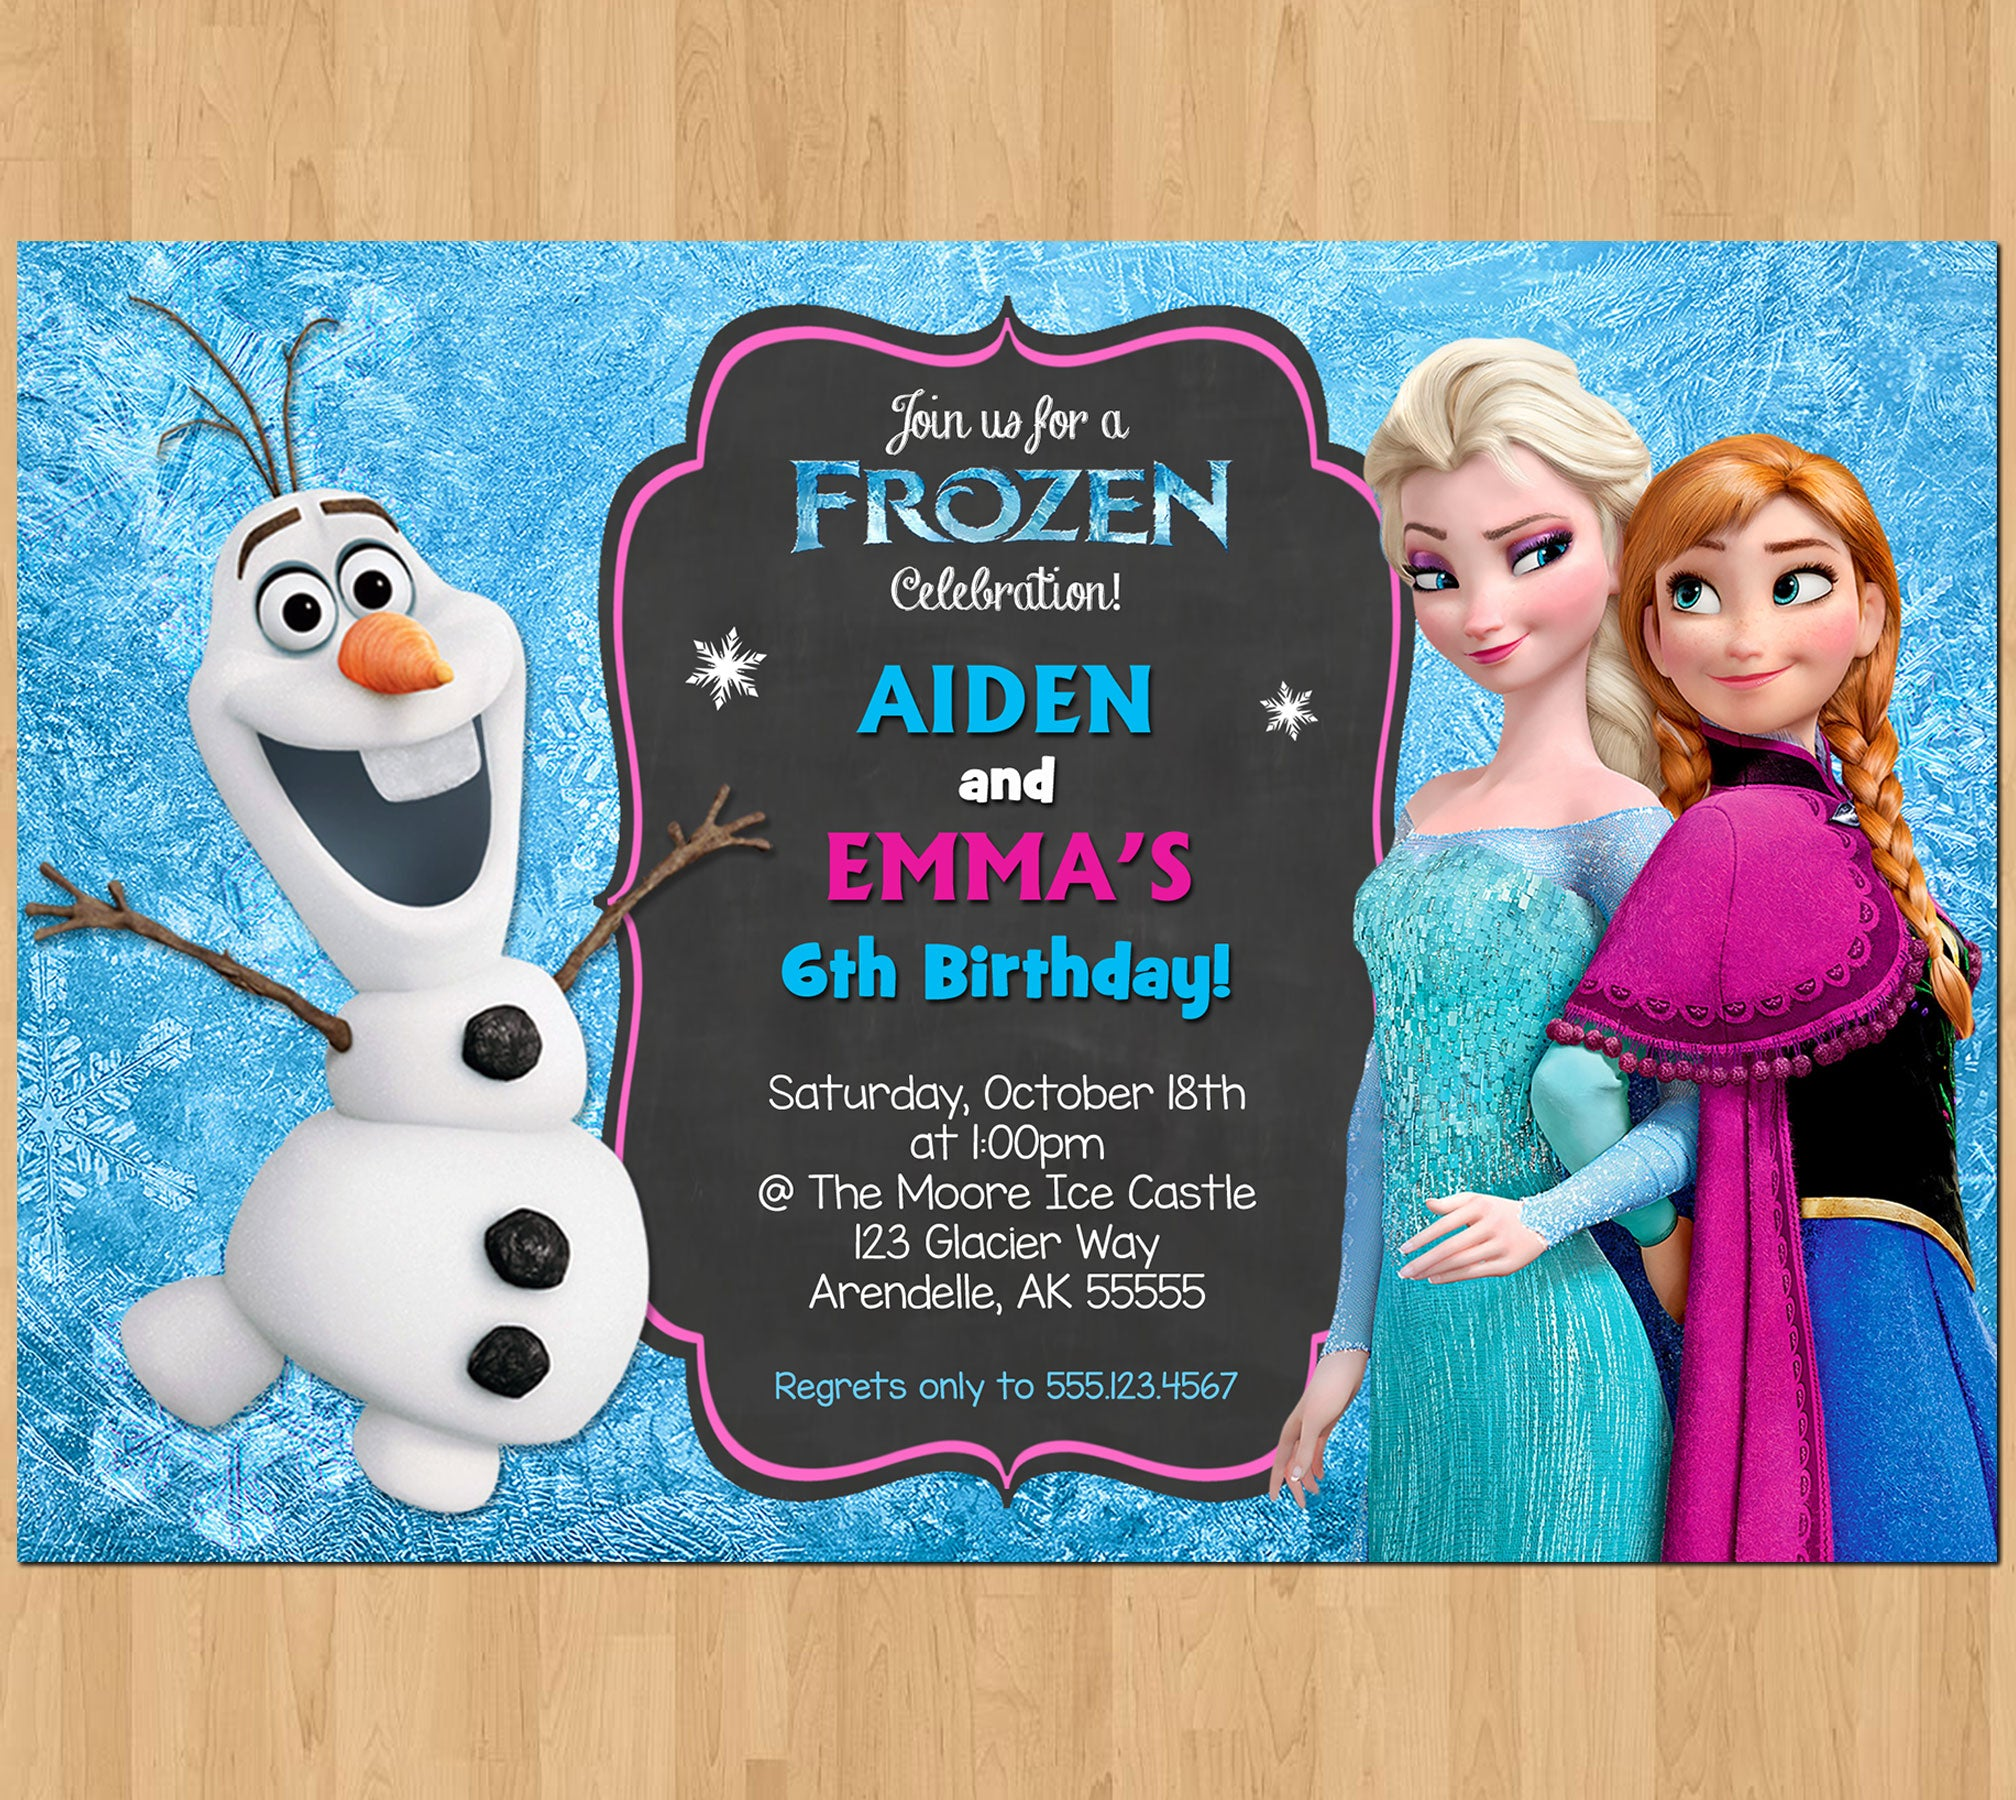 graphic about Printable Birthday Invitations for Girl called Sibling Birthday Invitation, Frozen Invitation Olaf Elsa Anna, Double Invitation Twin Dual Printable Birthday Social gathering Electronic Invite Boy Woman